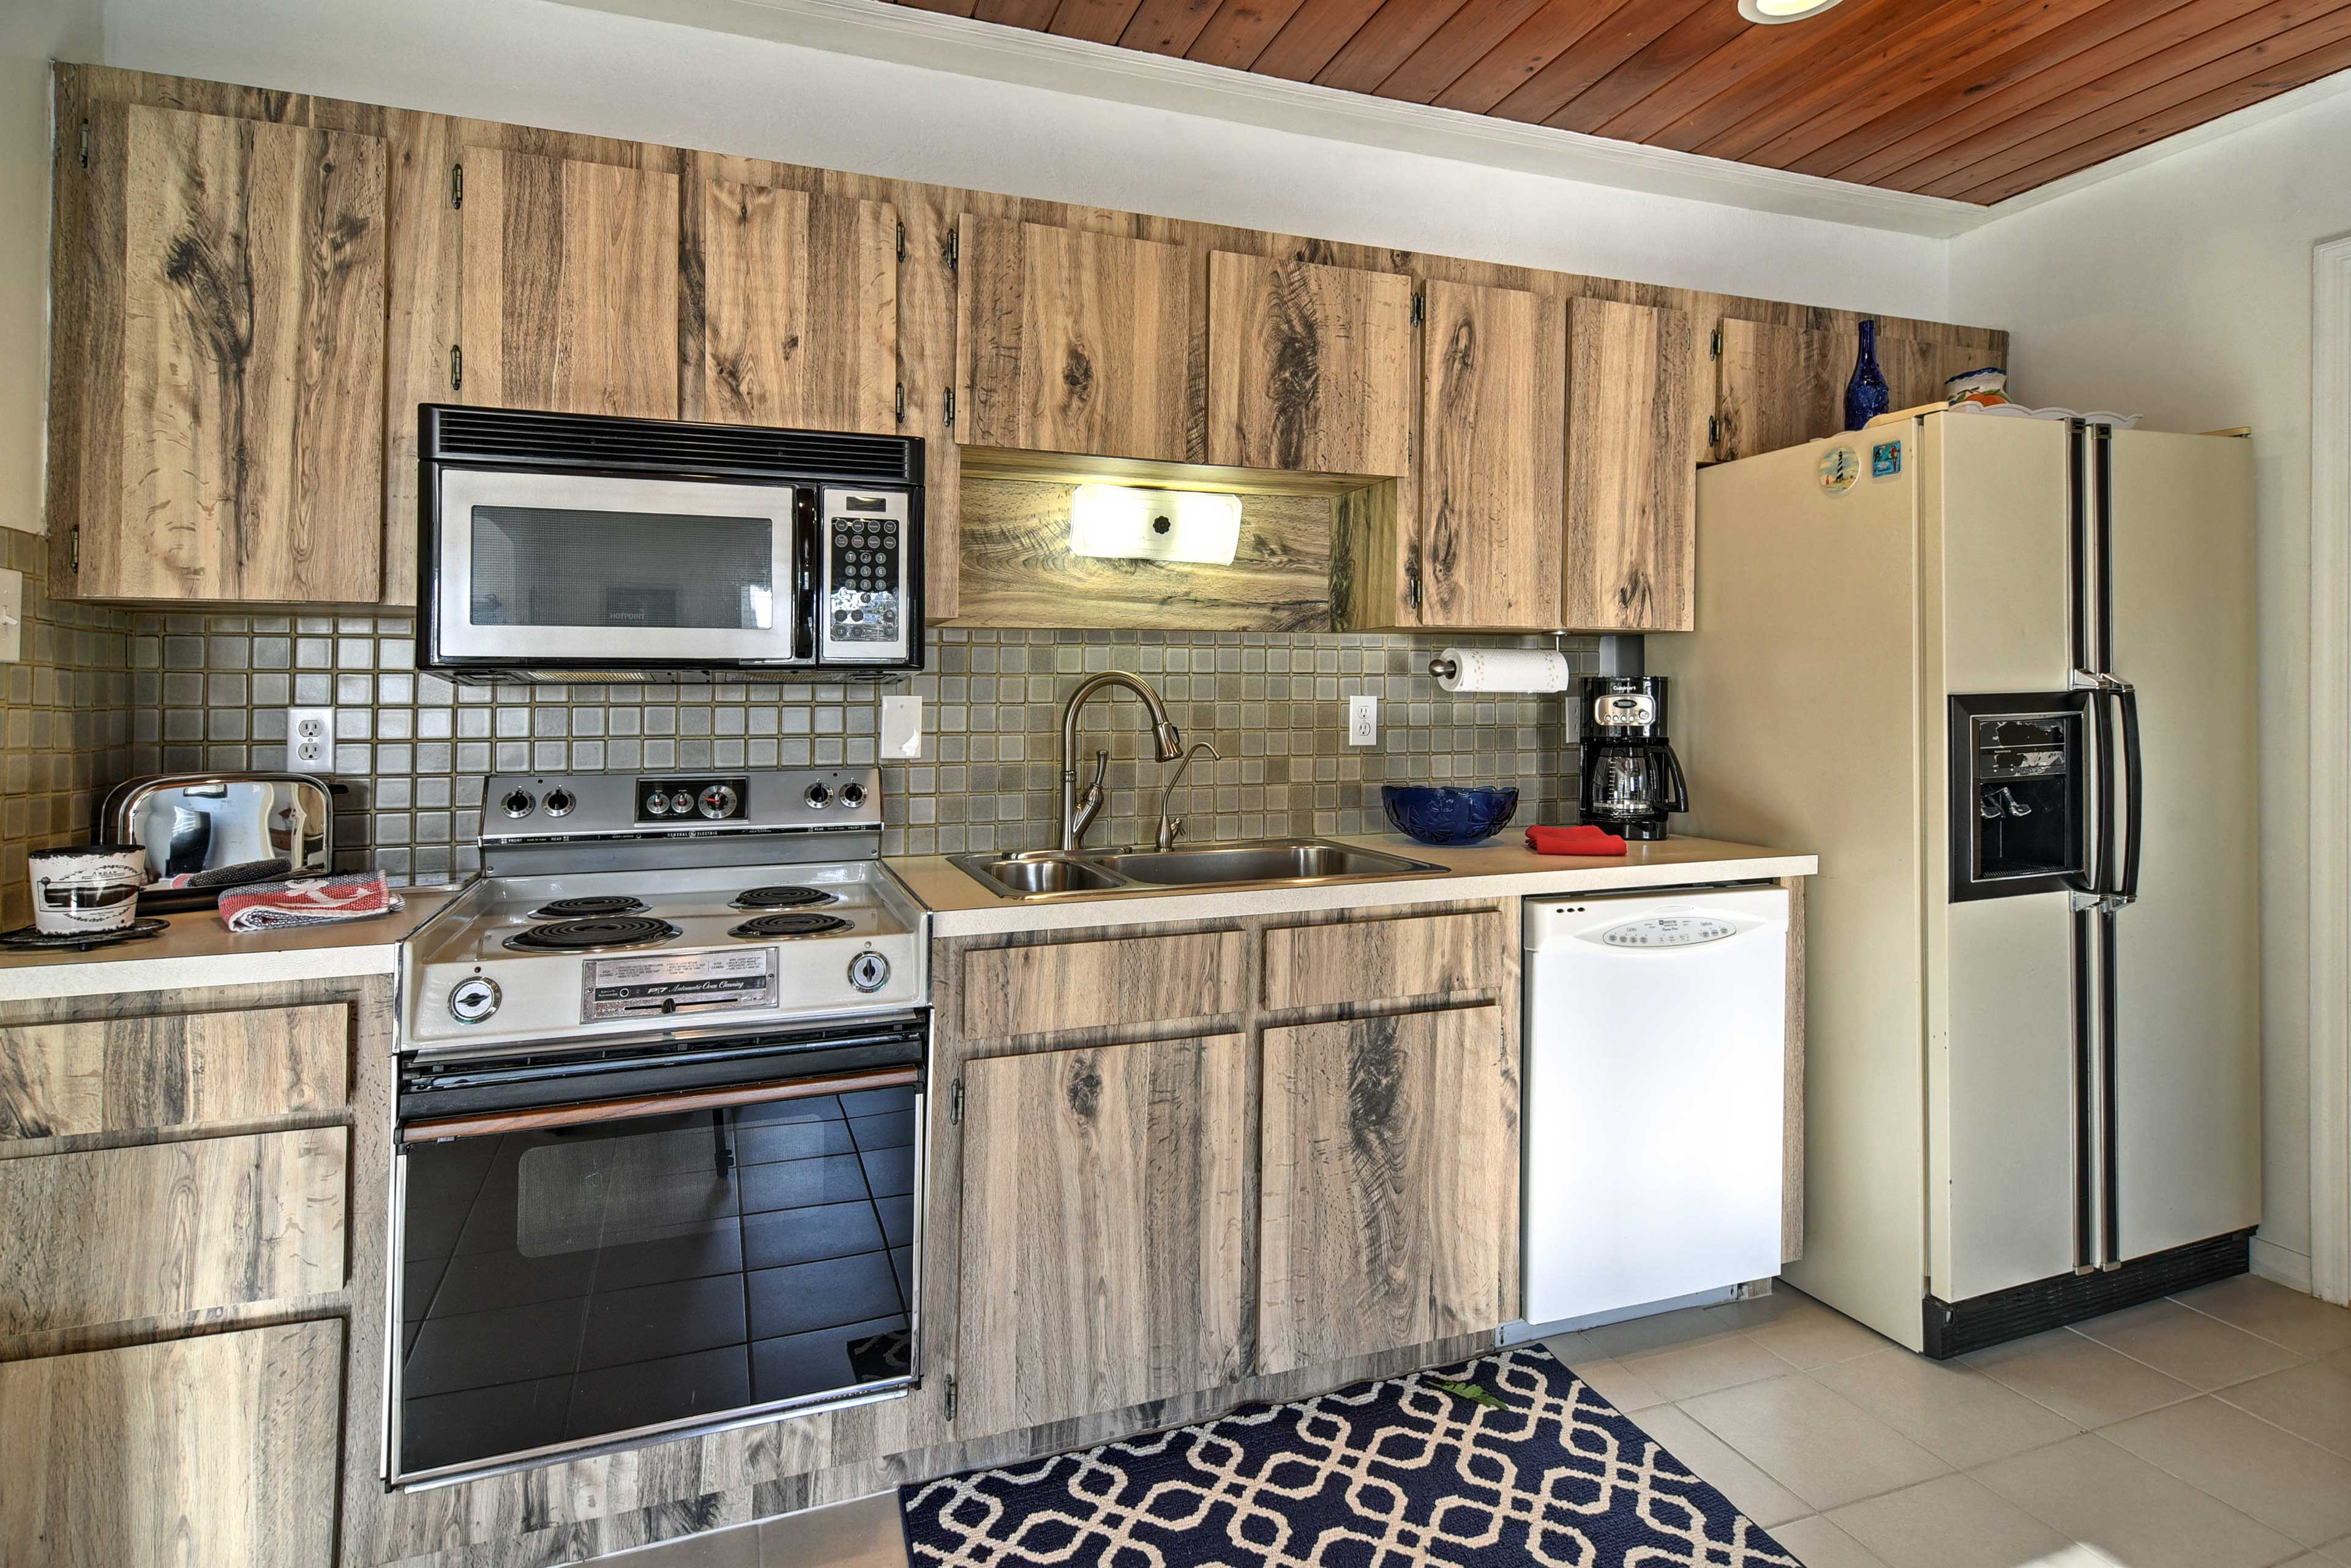 Custom cabinetry and stainless steel appliances make cooking a breeze.